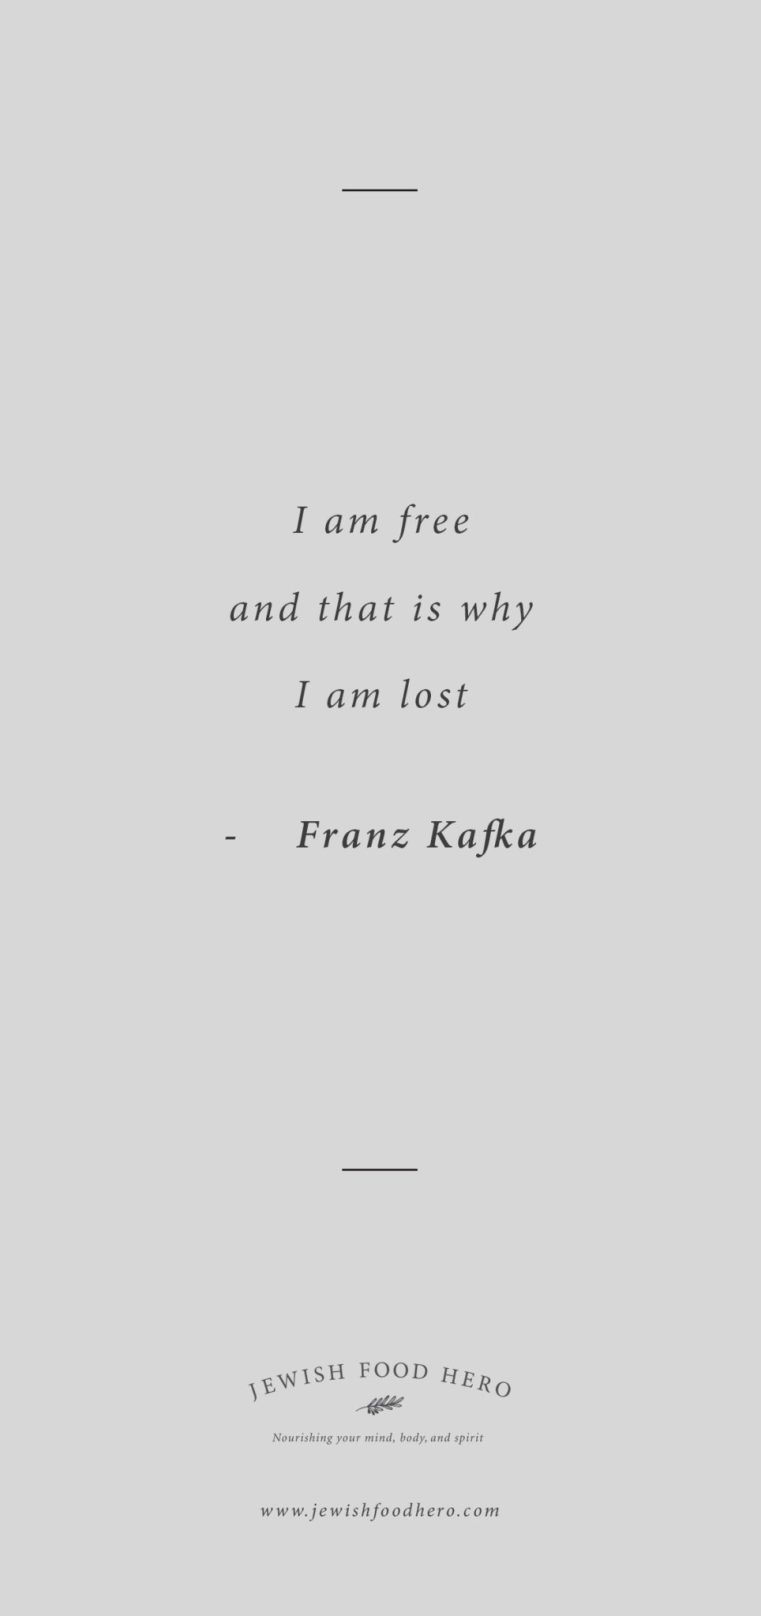 Franz Kafka quotes, quotes on freedom, jewish quotes on freedom